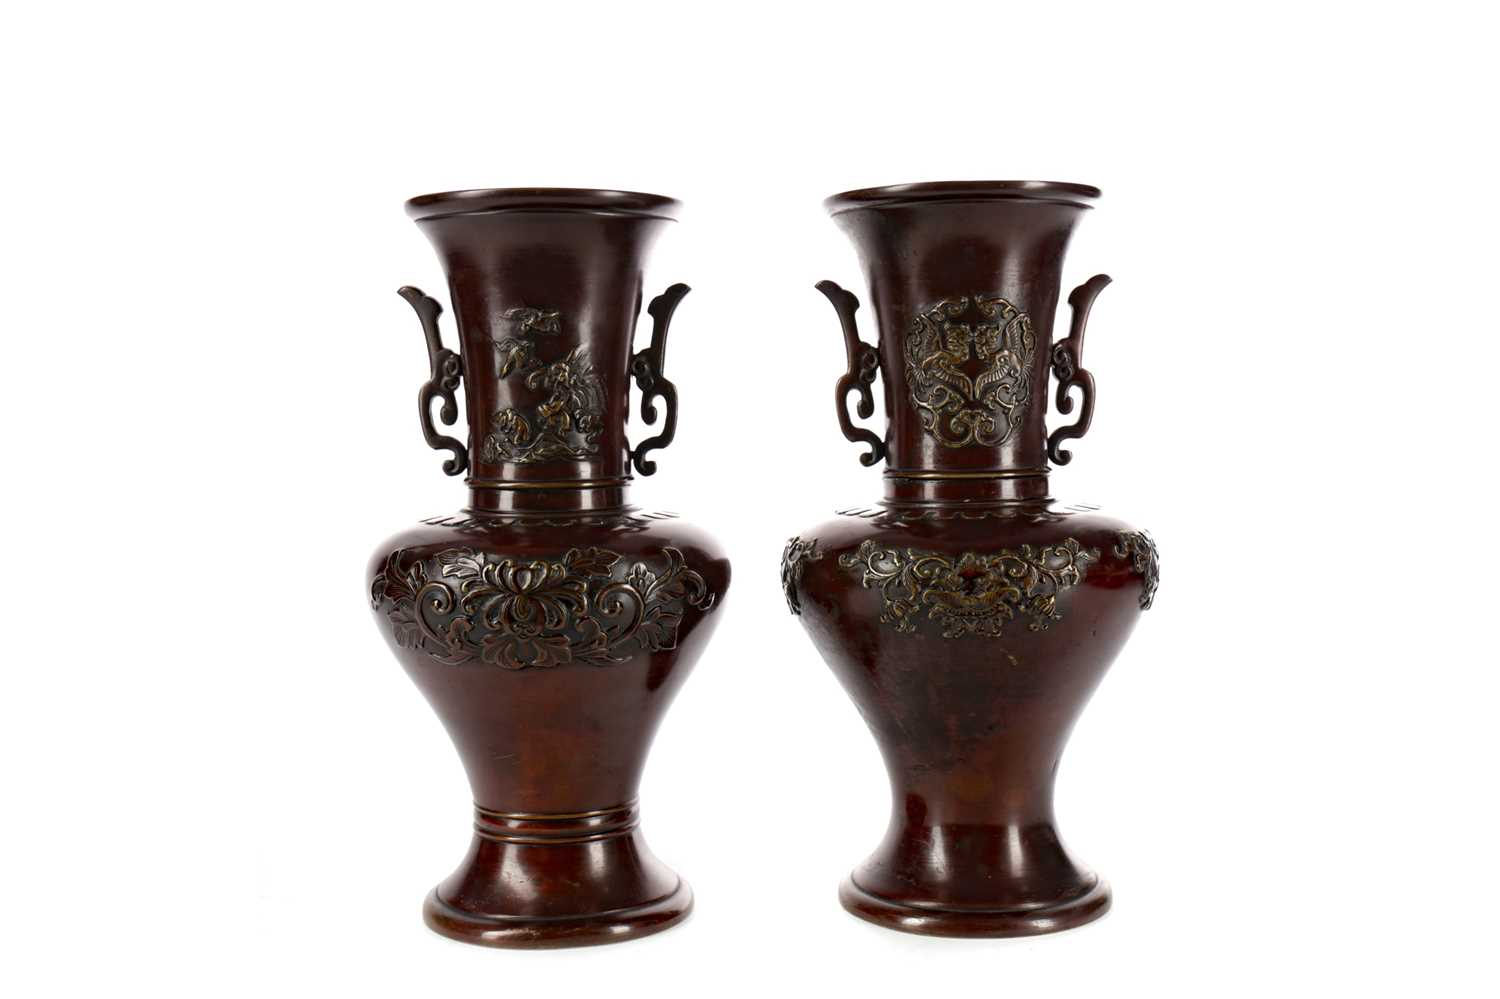 Lot 733 - A PAIR OF EARLY 20TH CENTURY JAPANESE BRONZE VASES